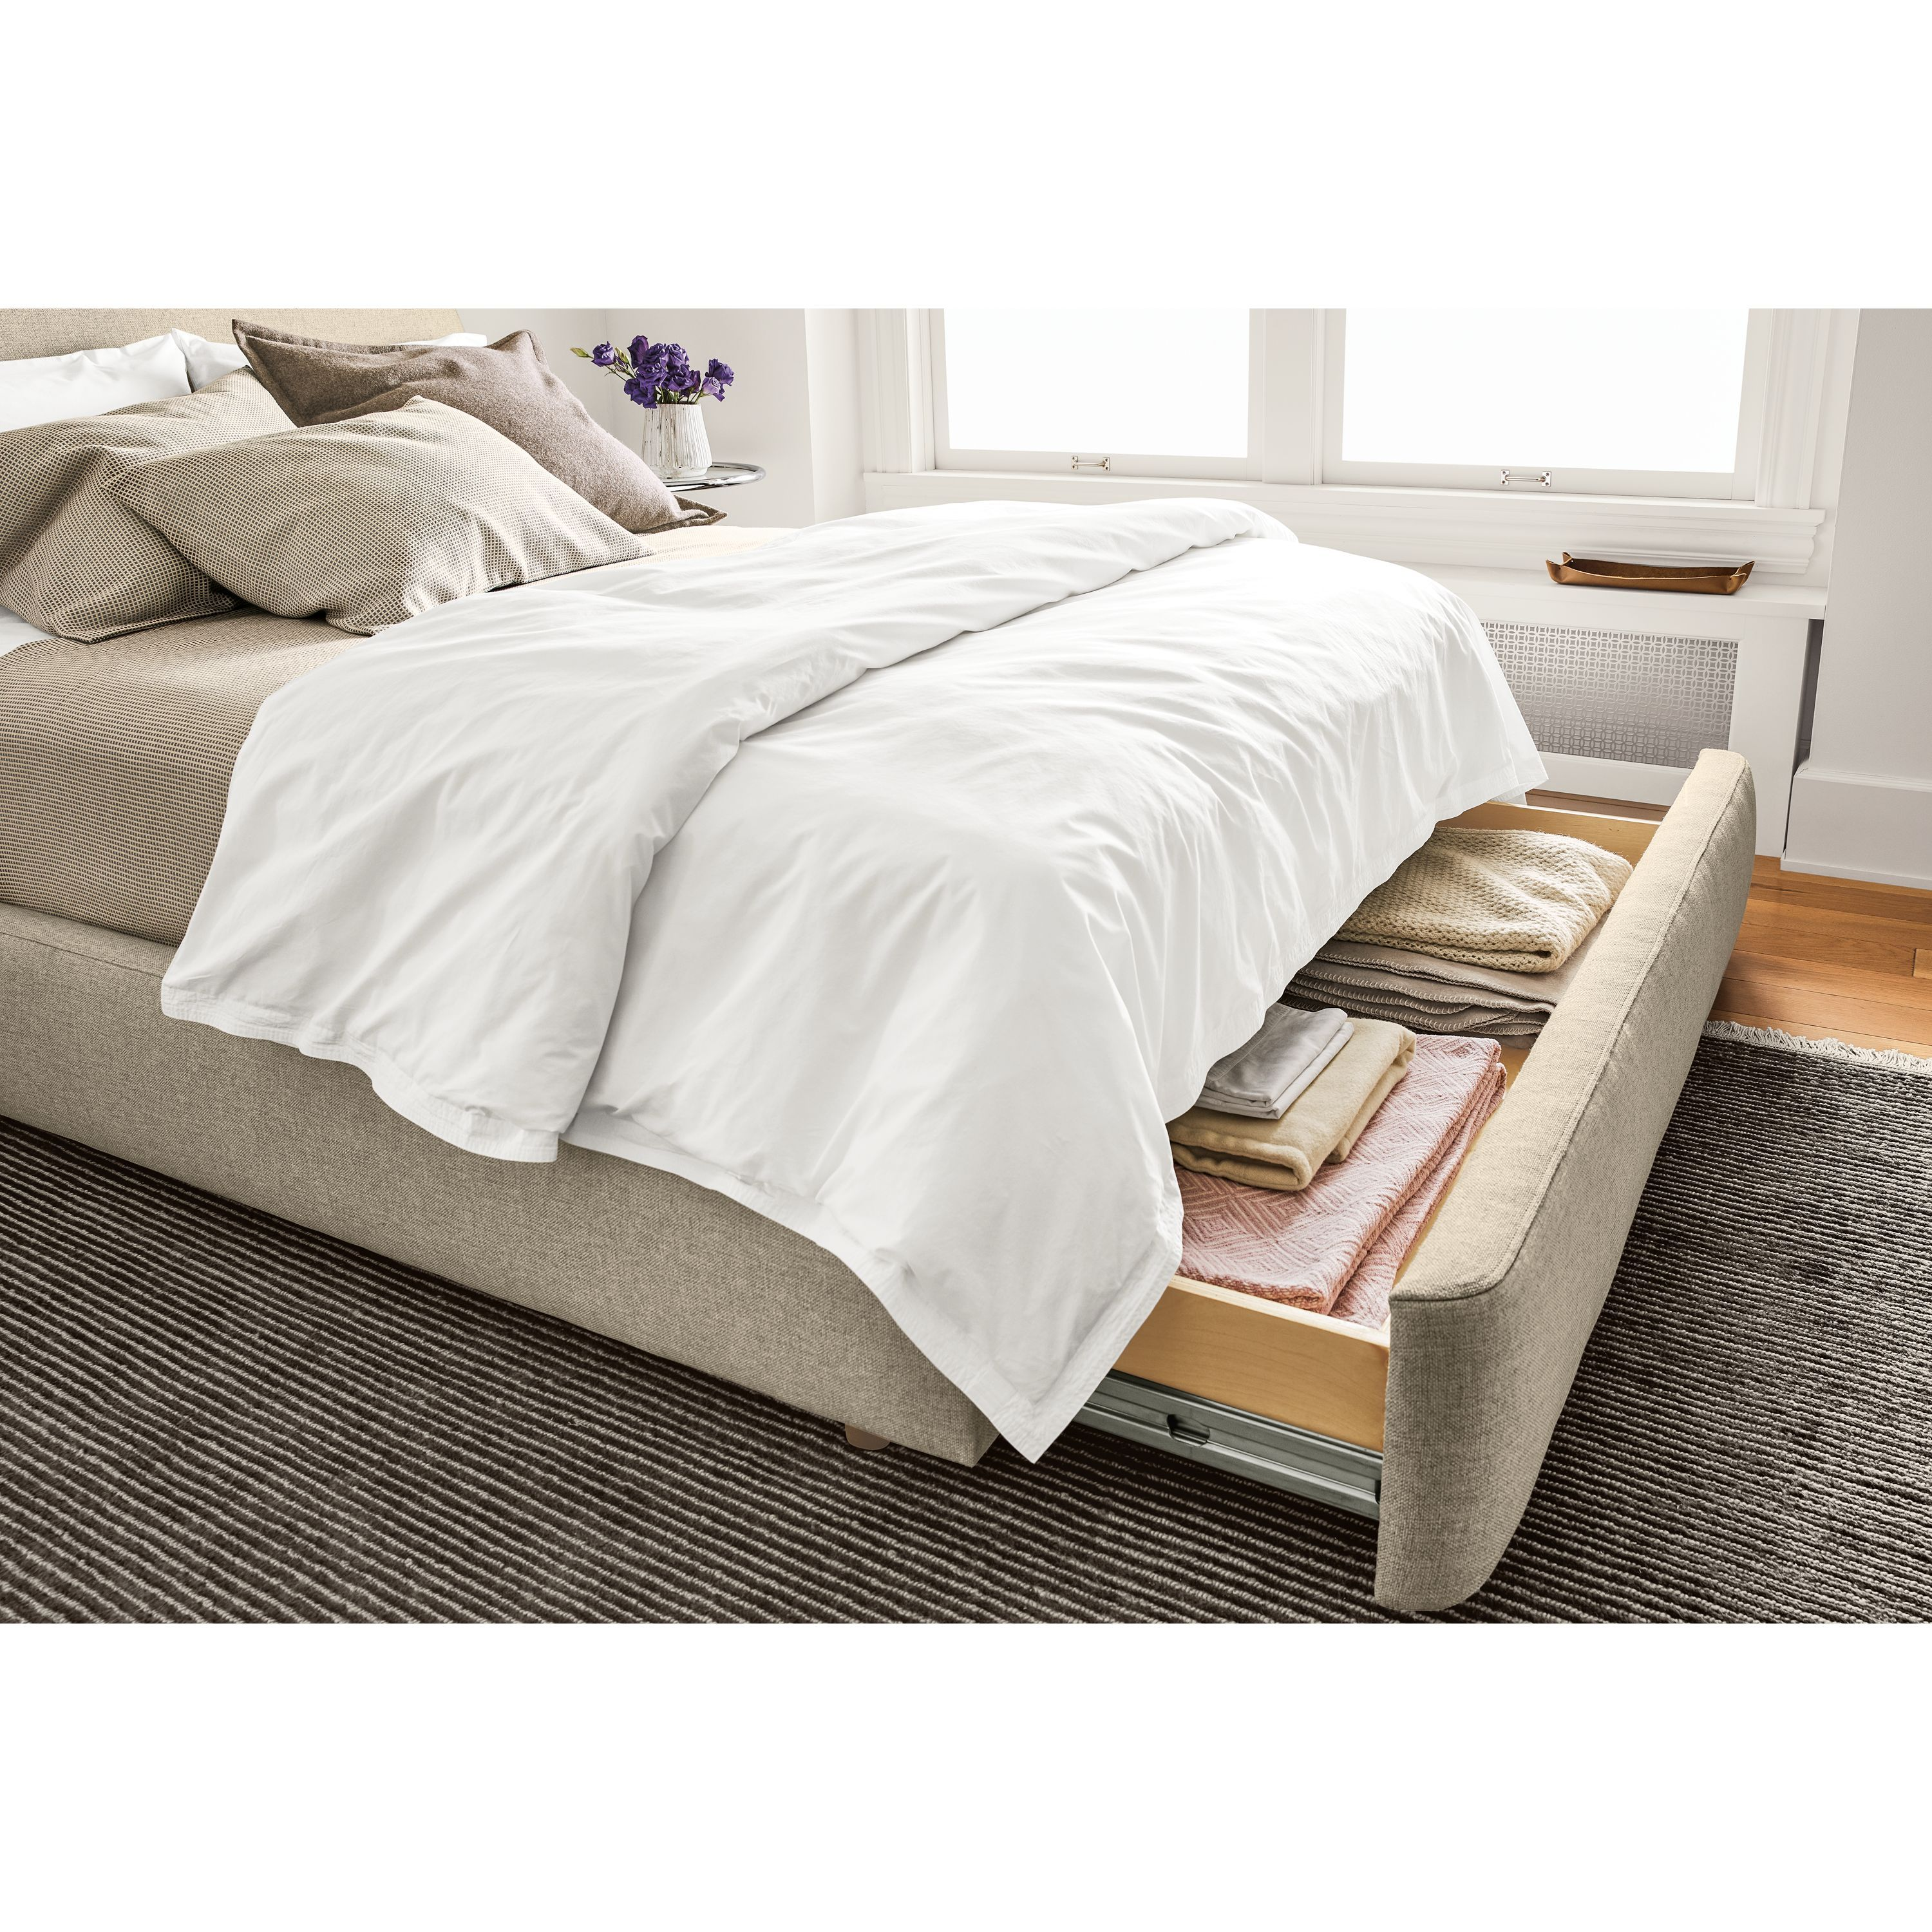 Percale Topstitch Duvet Cover King storage bed, Modern